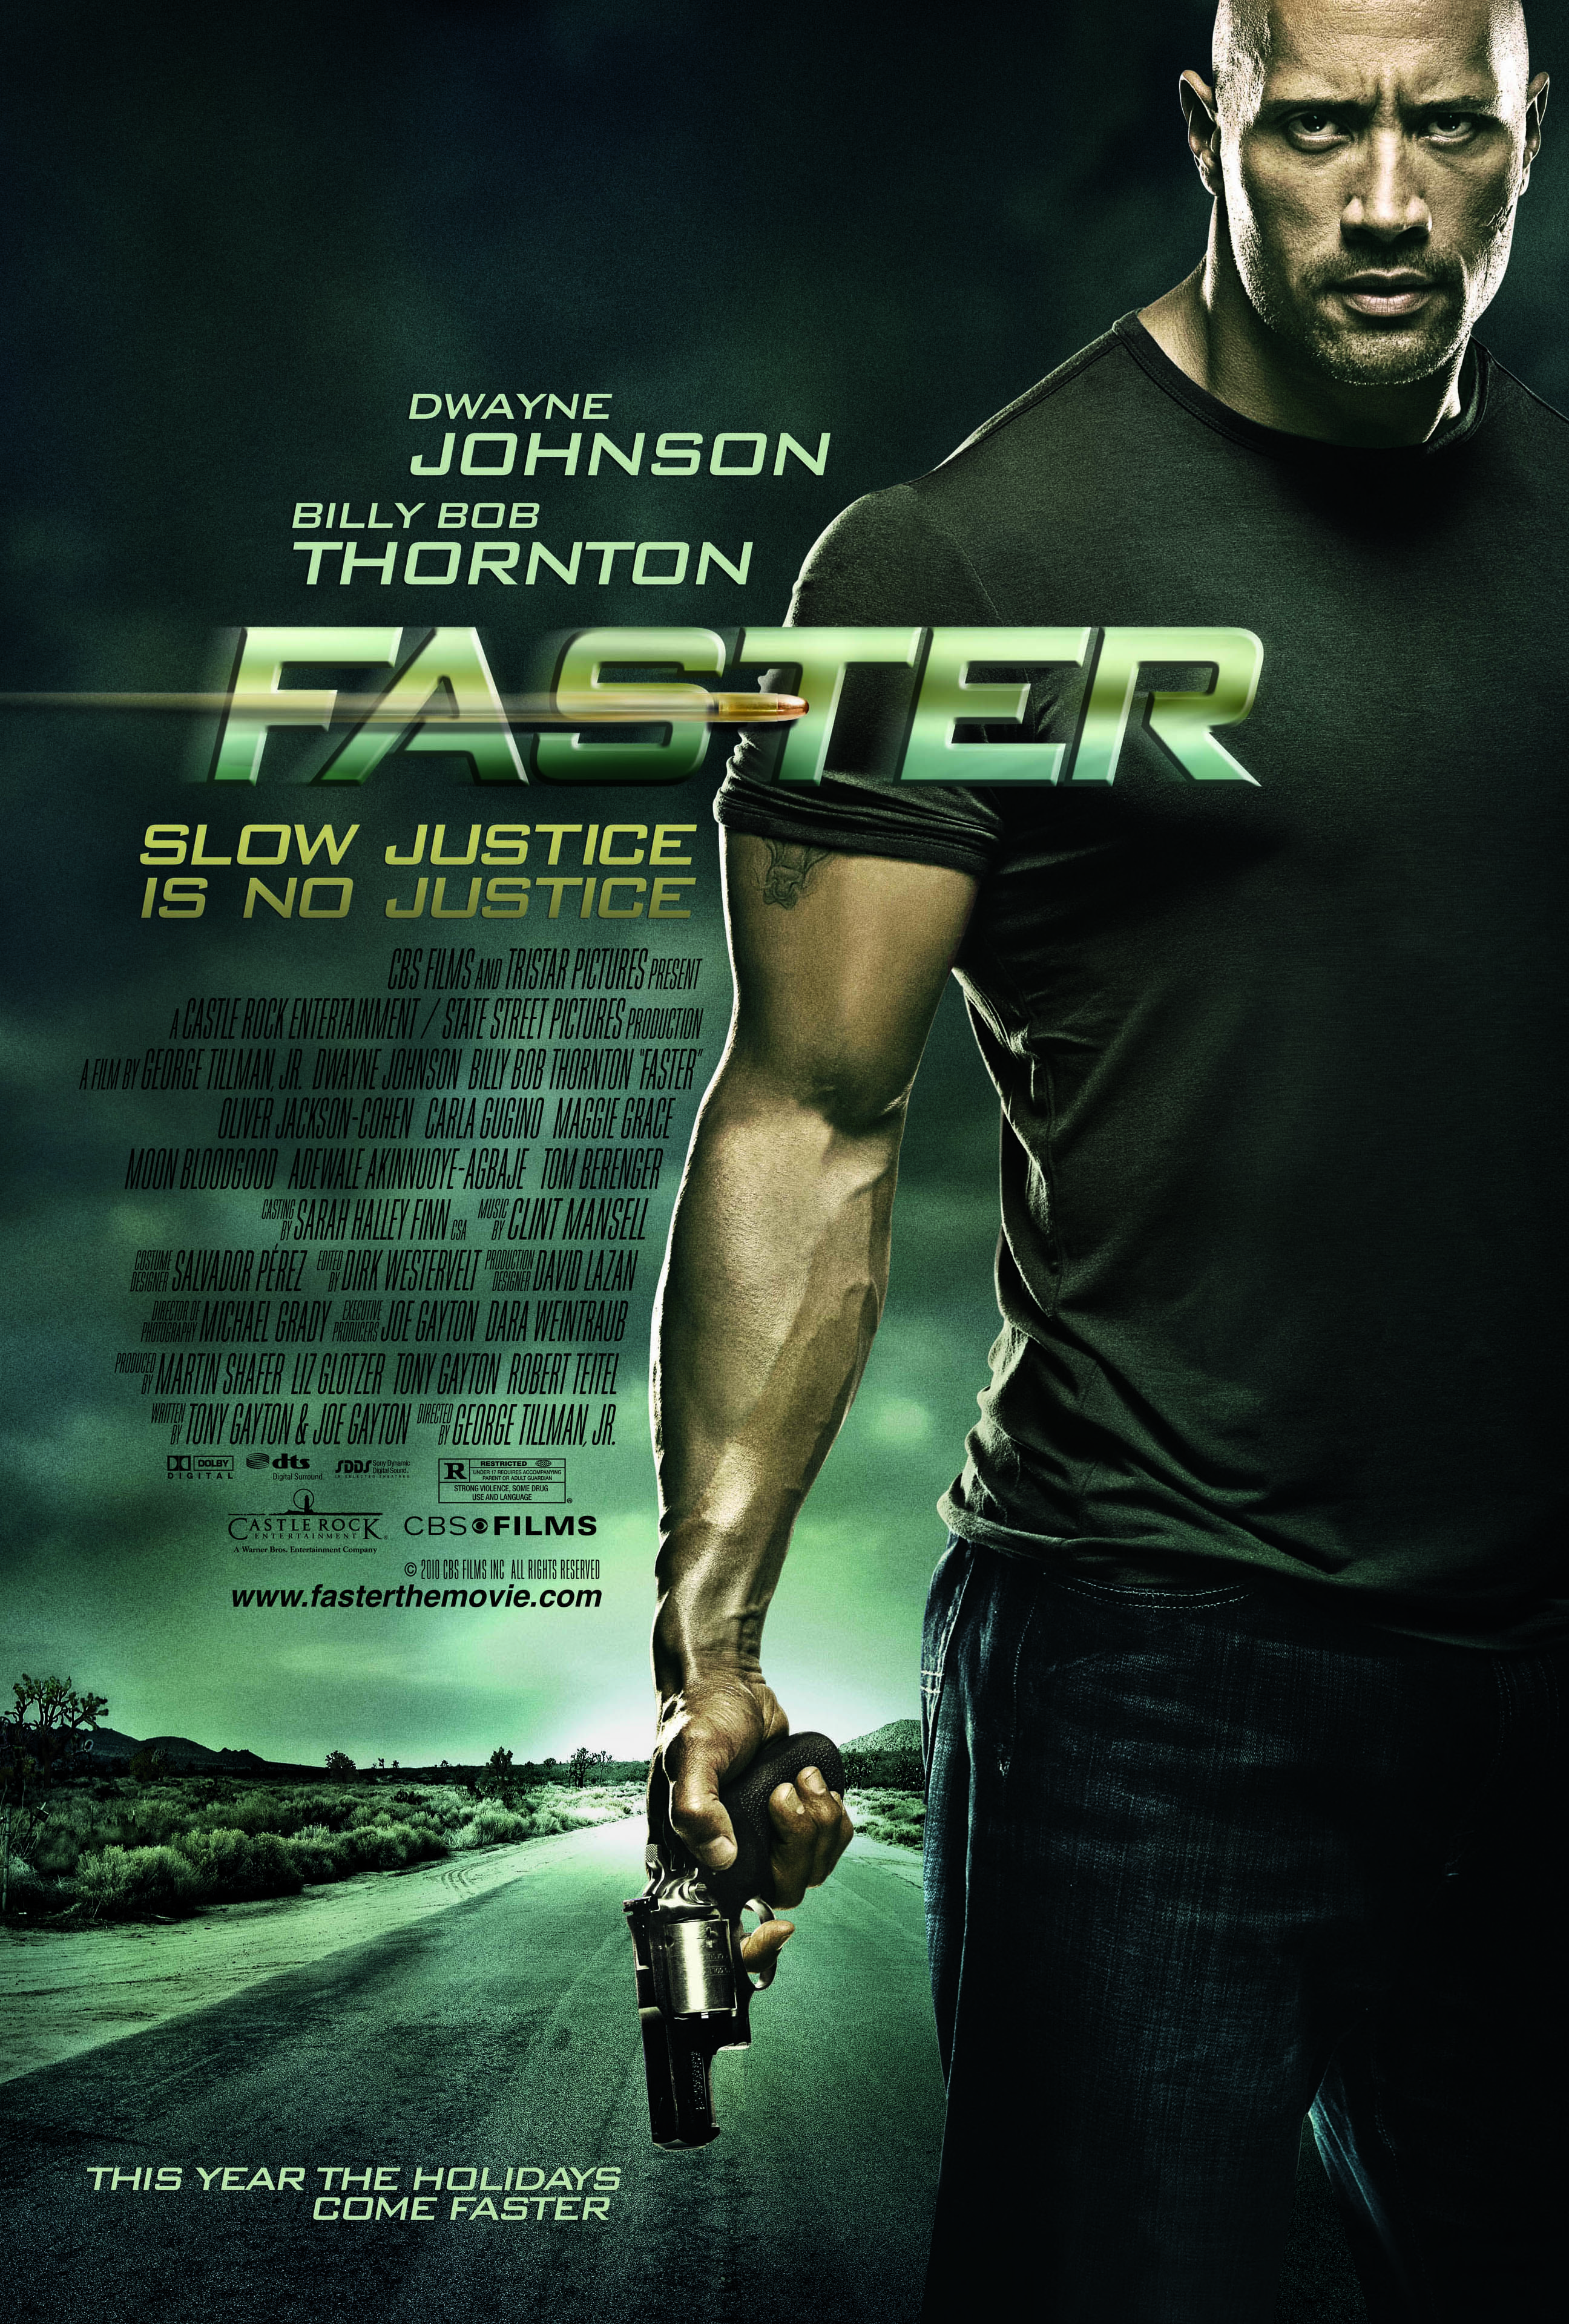 Not The Best Movie But A Cool Poster English Movies American Film Festival Assassin Movies